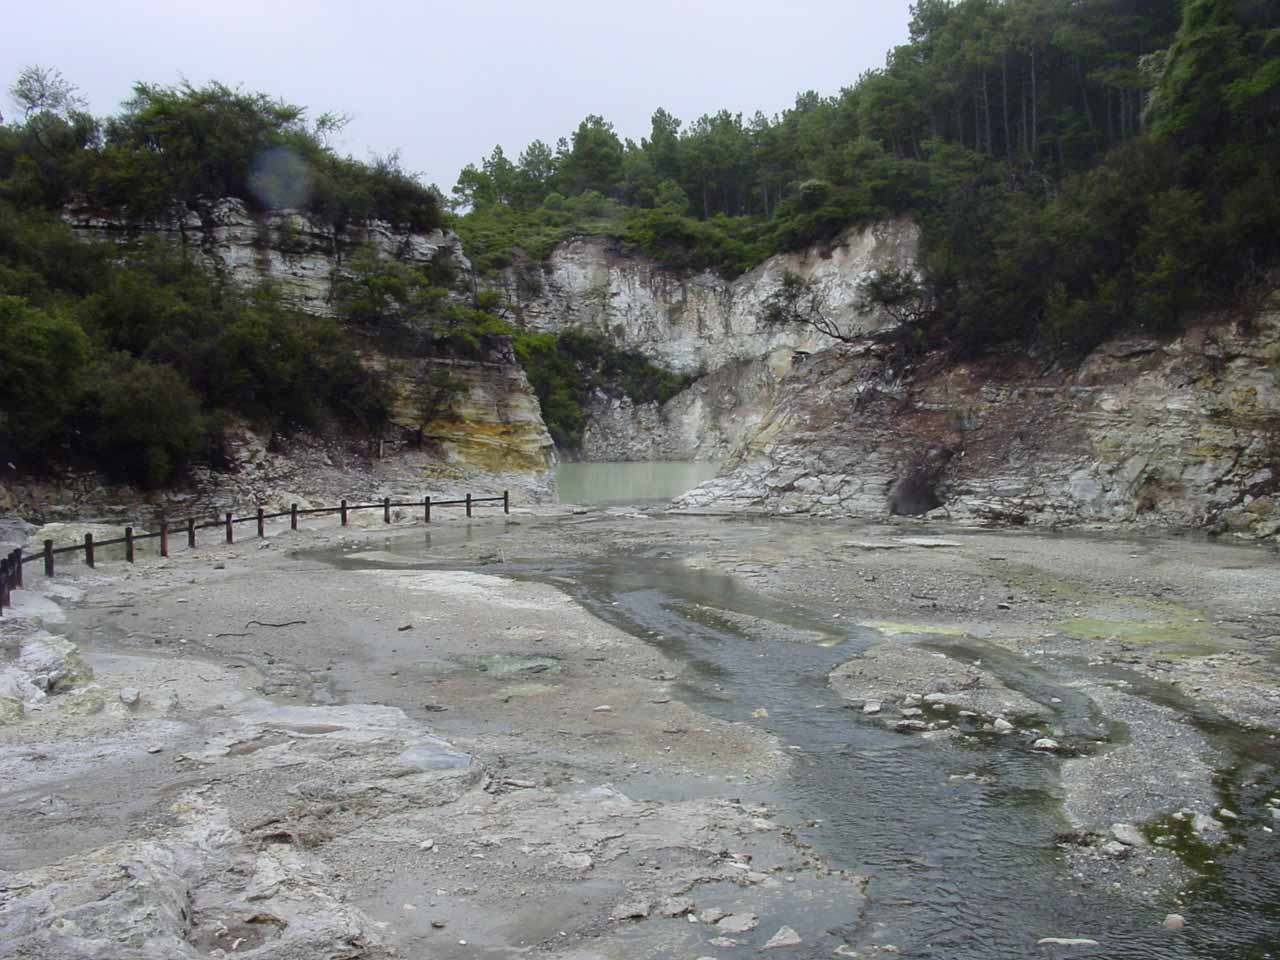 This was probably as far into Wai-o-tapu as we went before retreating to Lady Knox Geyser